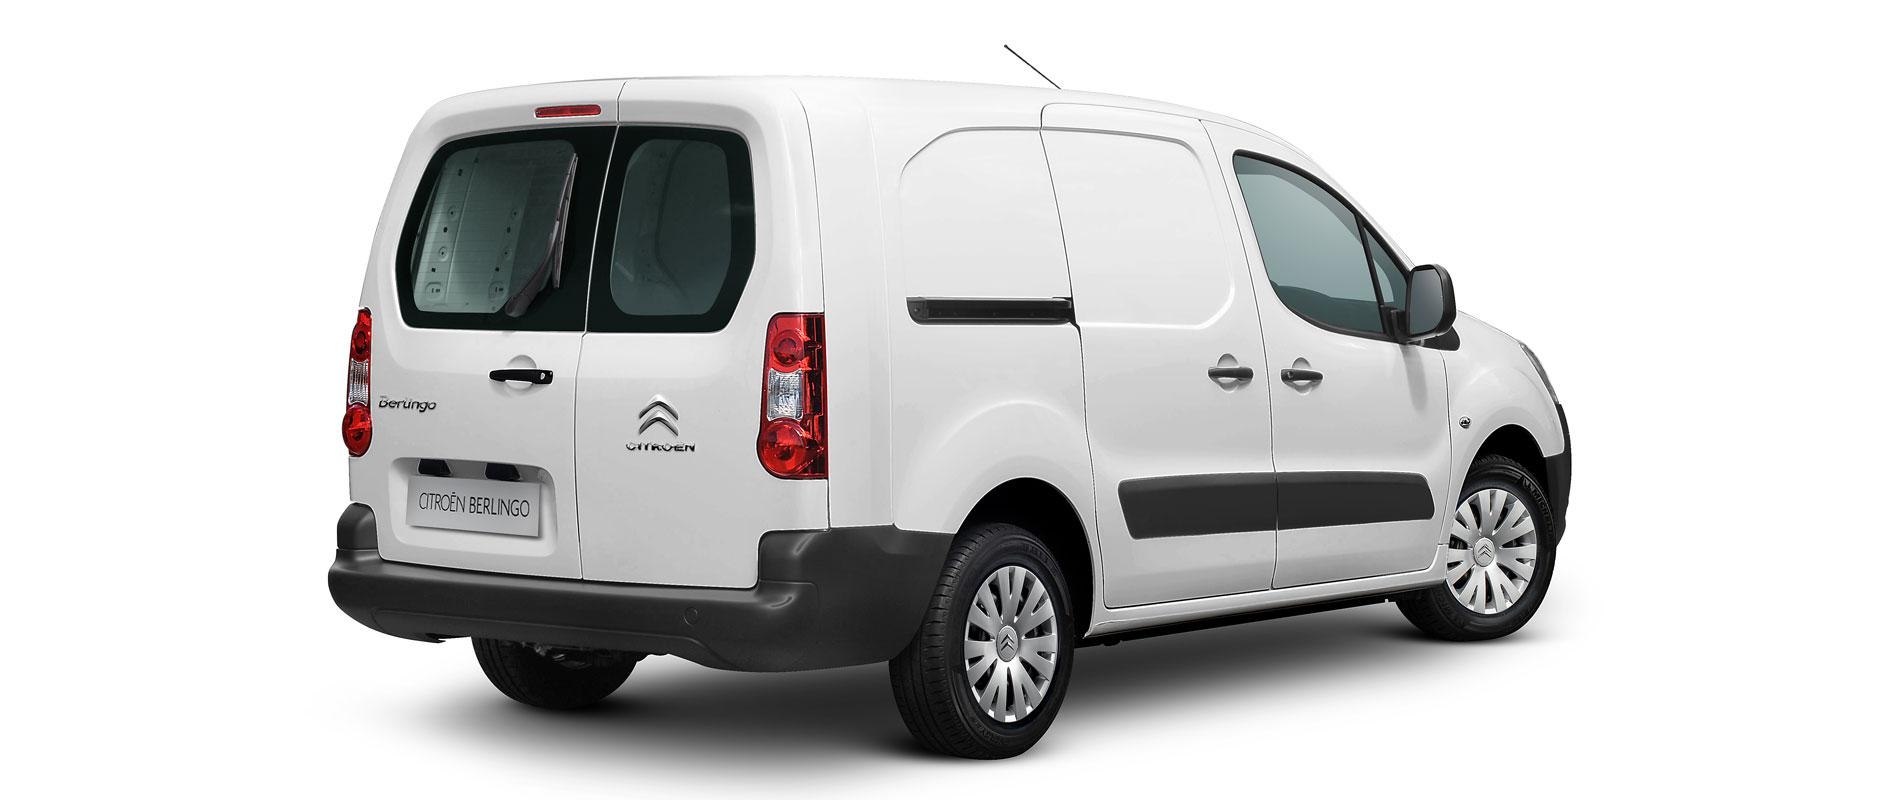 Citroen Berlingo #18